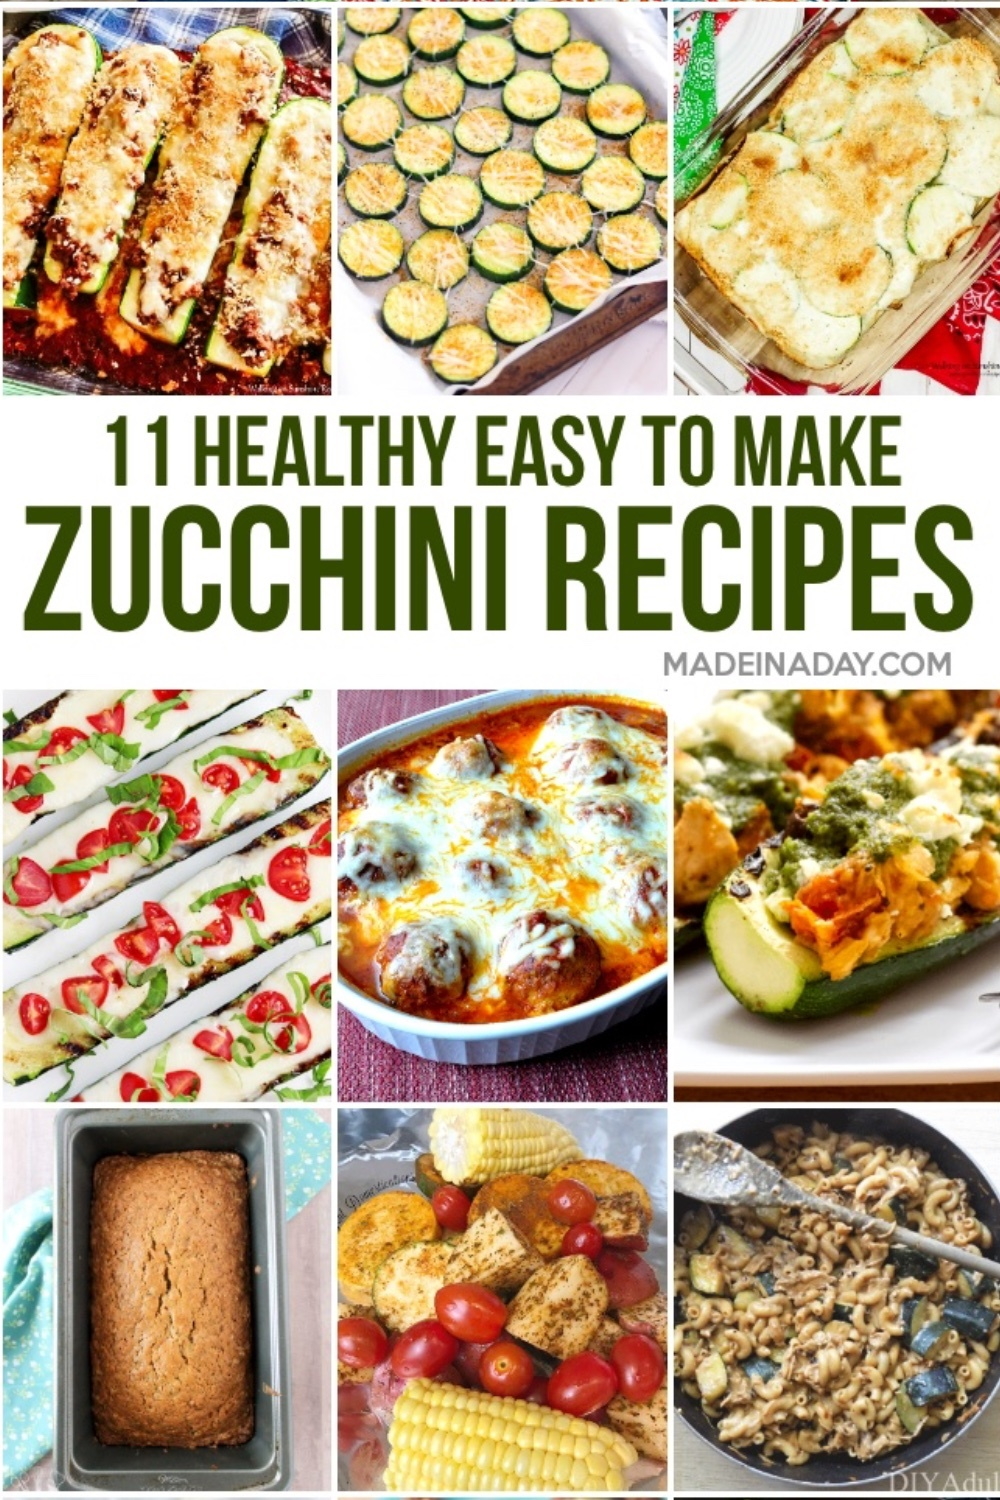 12 Healthy Zucchini Squash Recipes